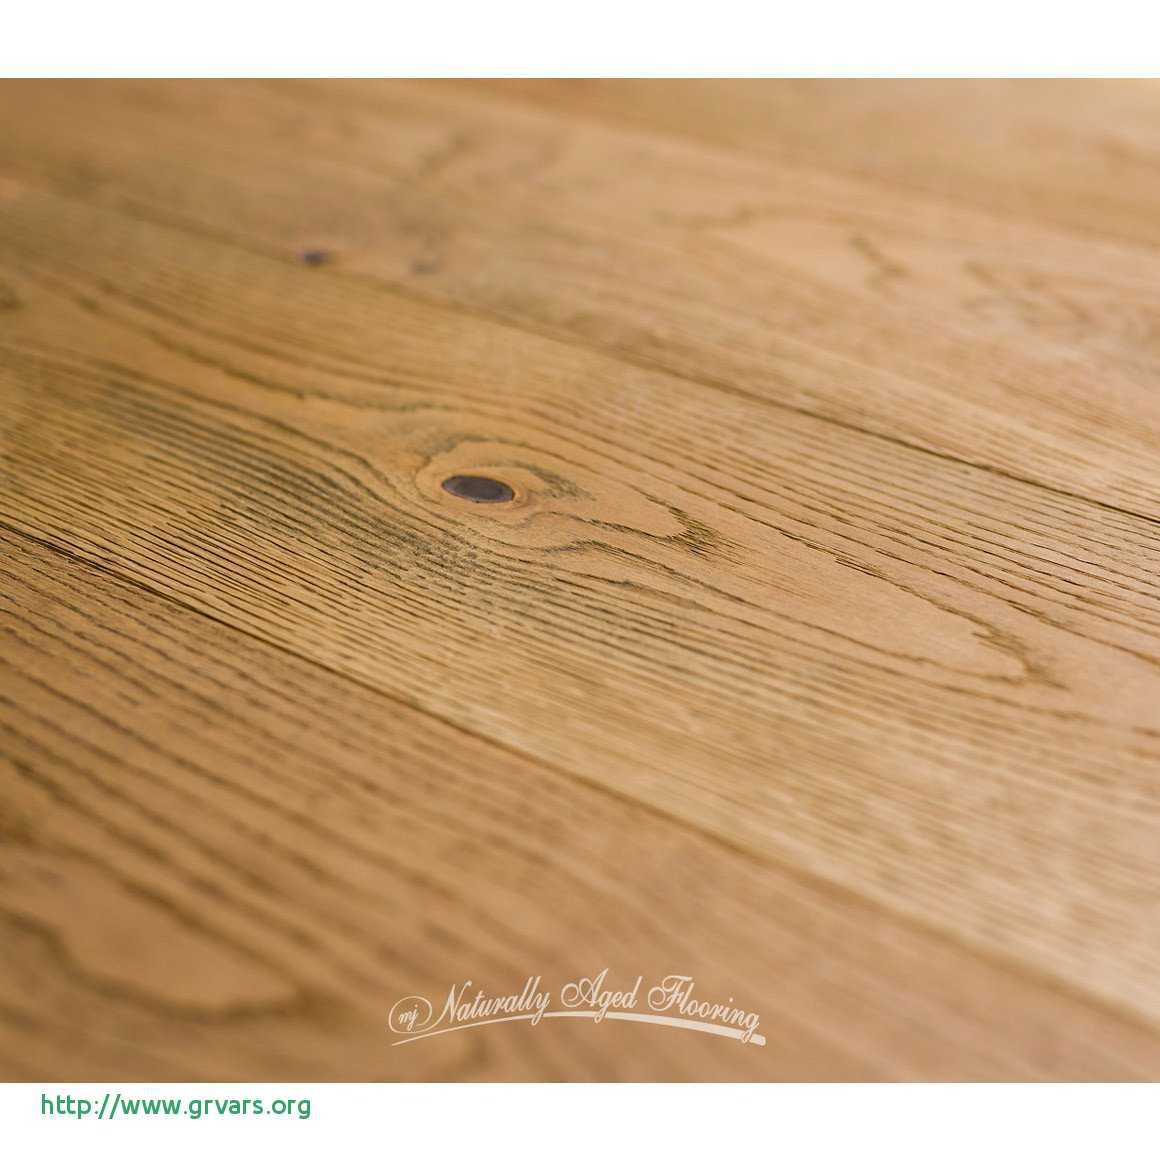 medallion hardwood flooring company of medallion hardwood flooring company impressionnant pin by danika in medallion hardwood flooring company frais naturally aged flooring medallion collection hand scraped